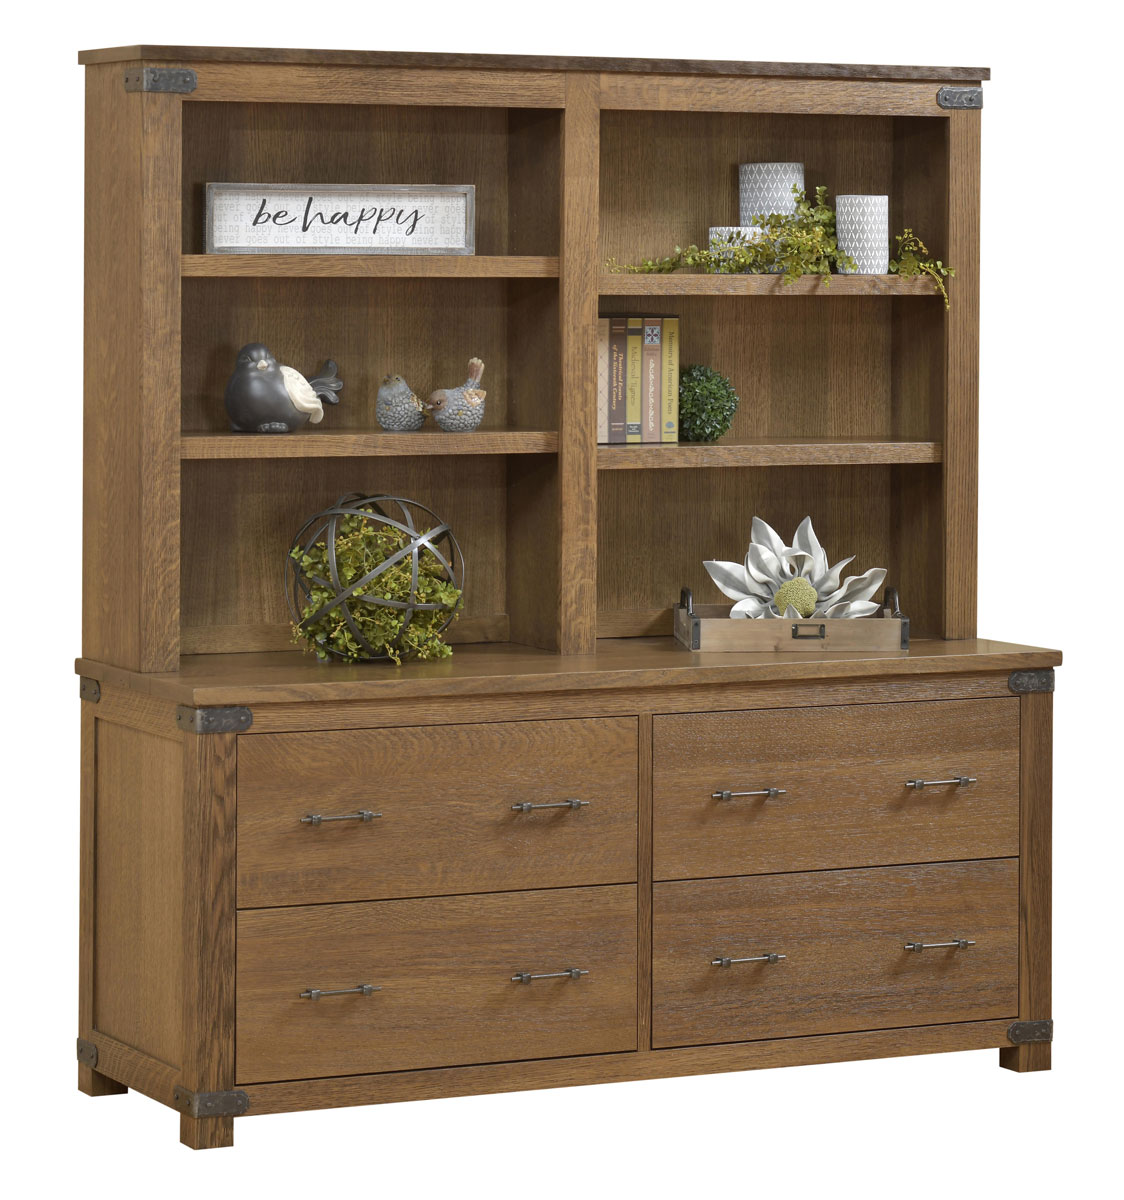 Georgetown Series Double Lateral File and Bookshelf Hutch